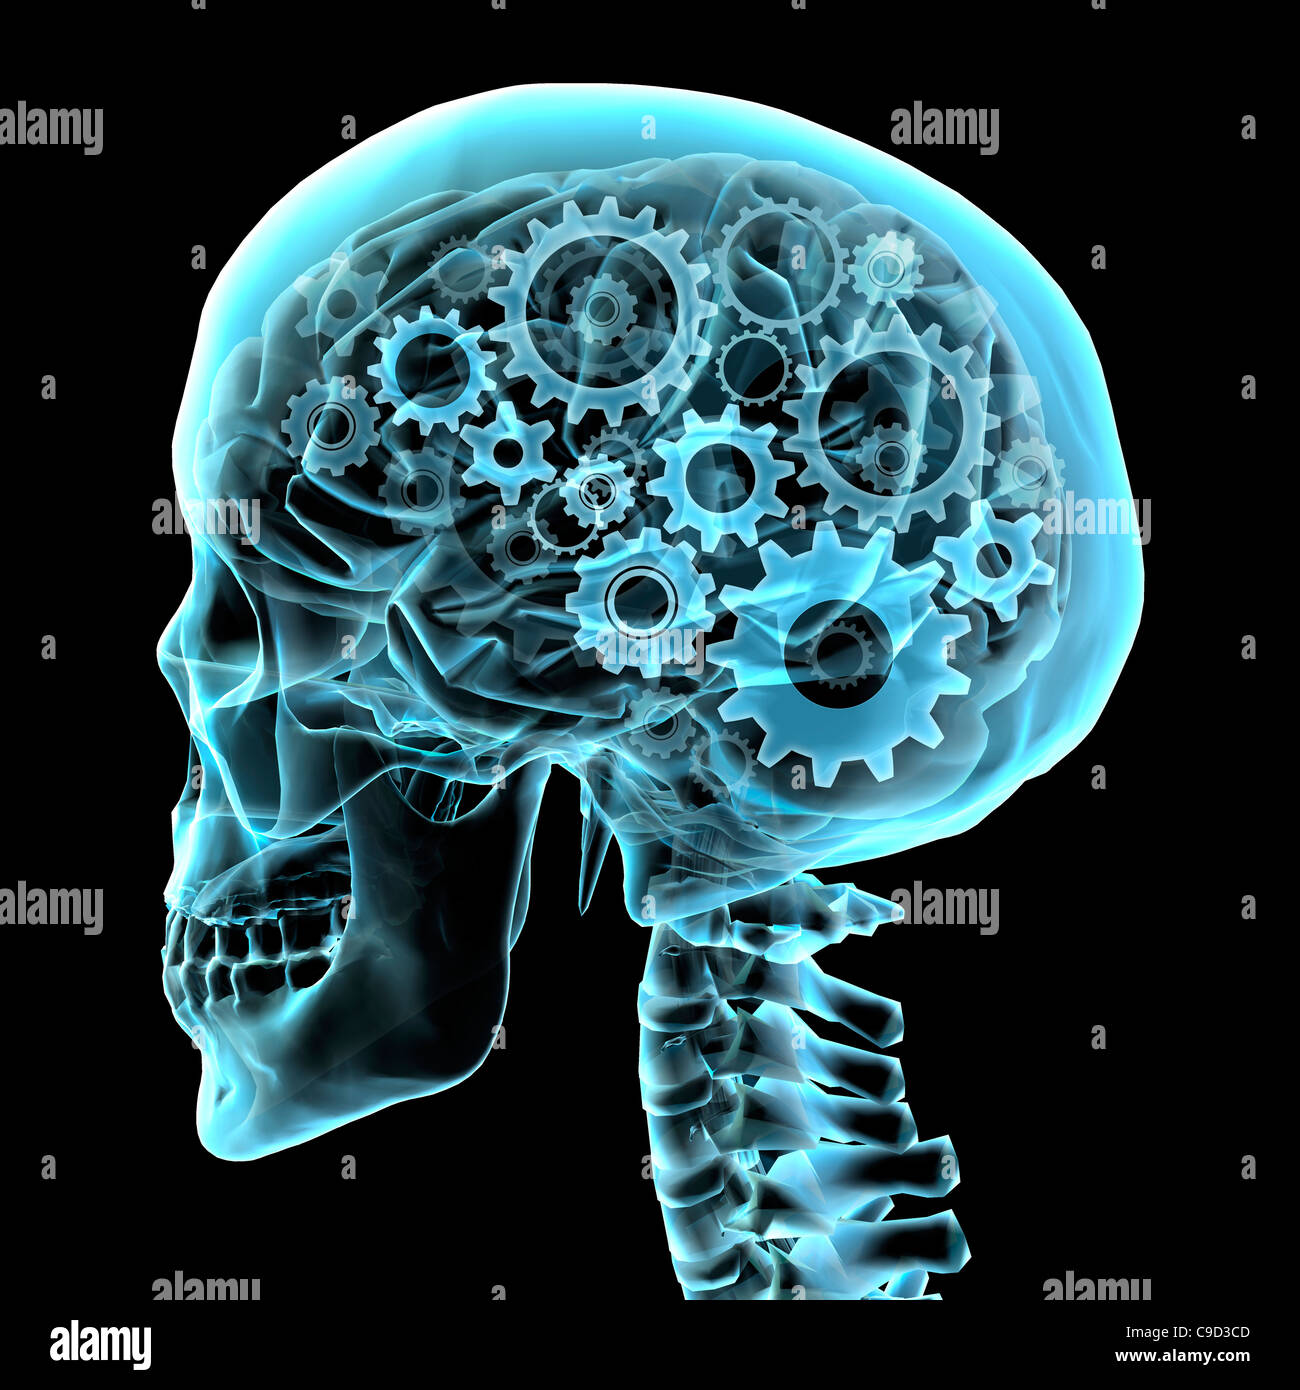 Brain with gears, Digitally Generated Image by Hank Grebe - Stock Image